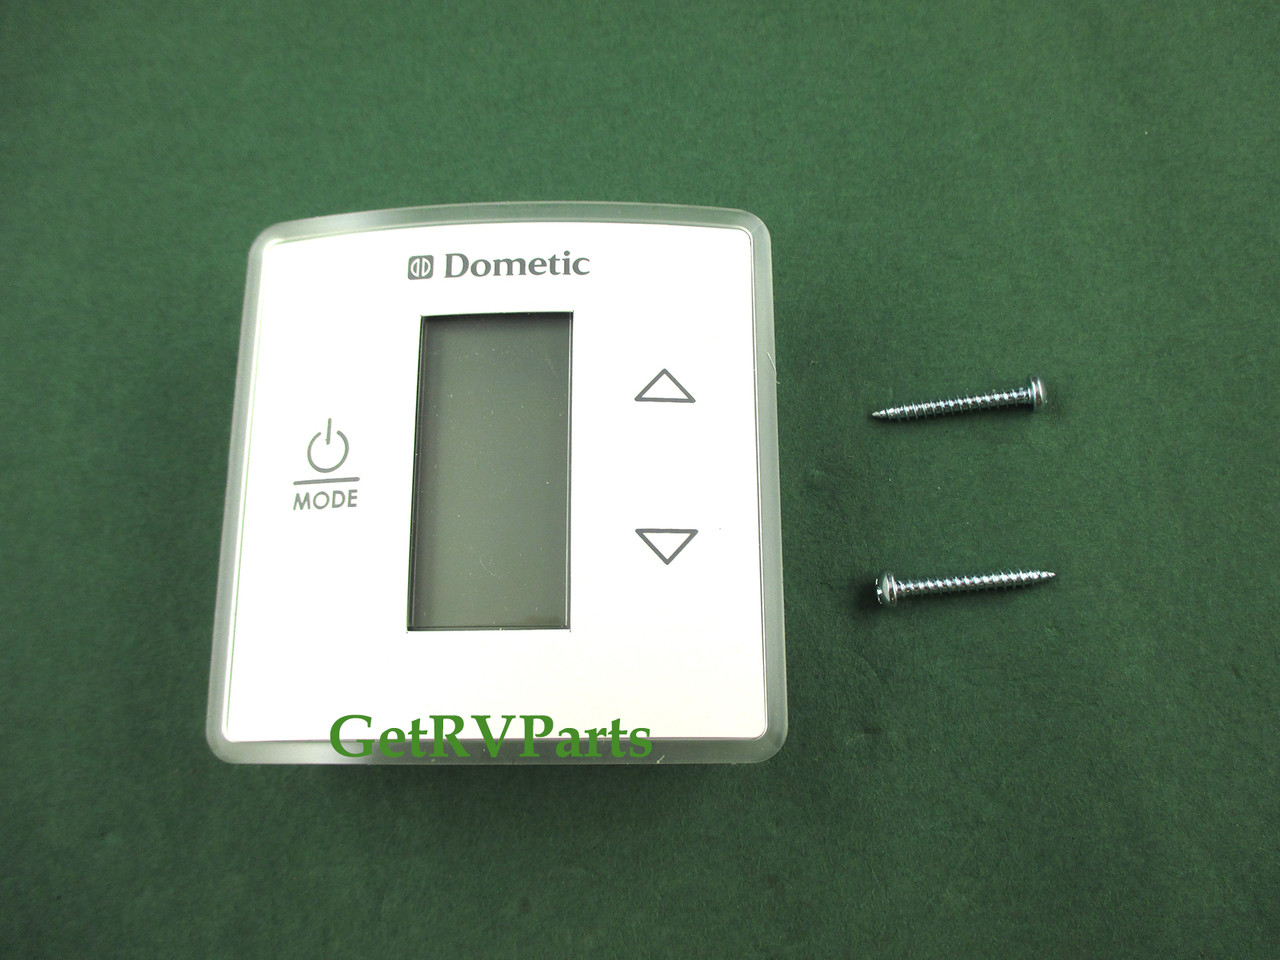 hight resolution of dometic 331625000 rv air conditioner cool furnace thermostat image 1 loading zoom